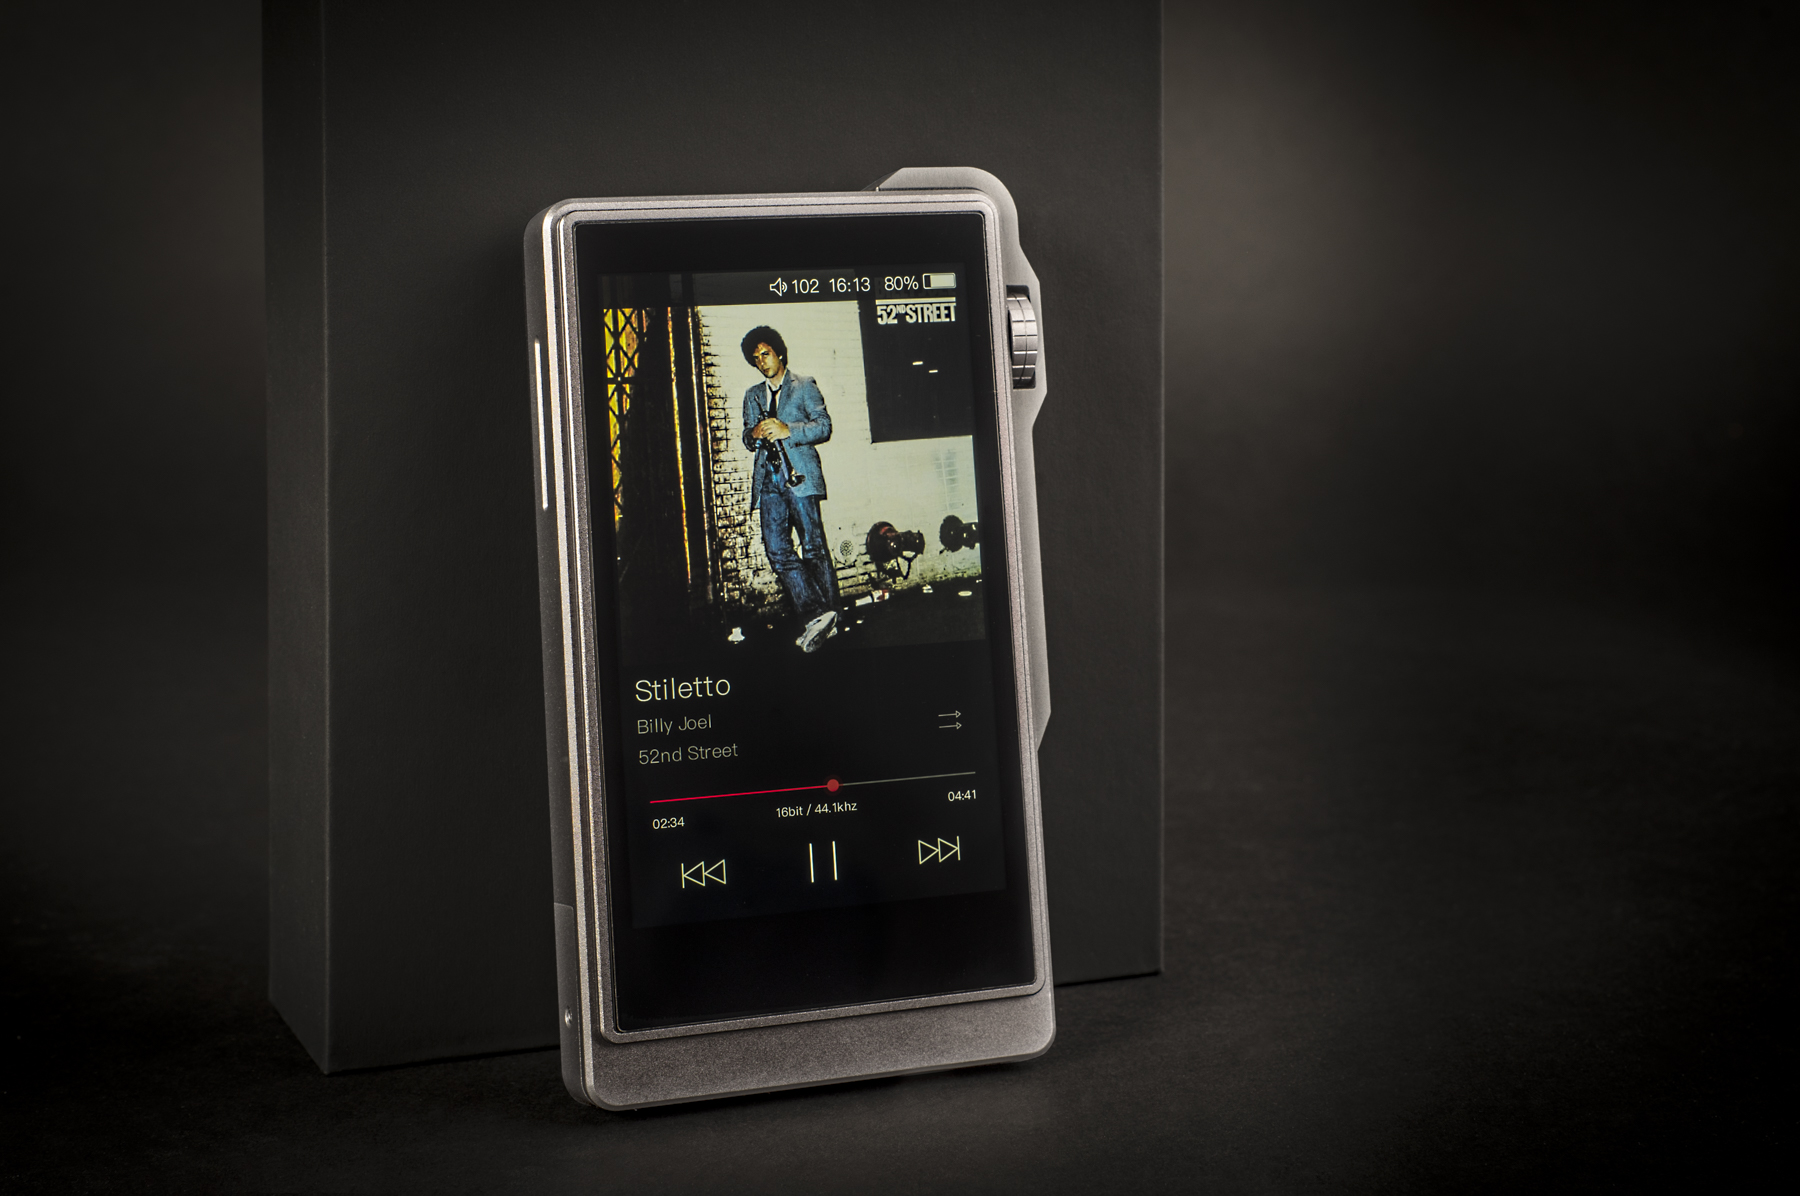 Test: Digital Audio Player iBasso DX200